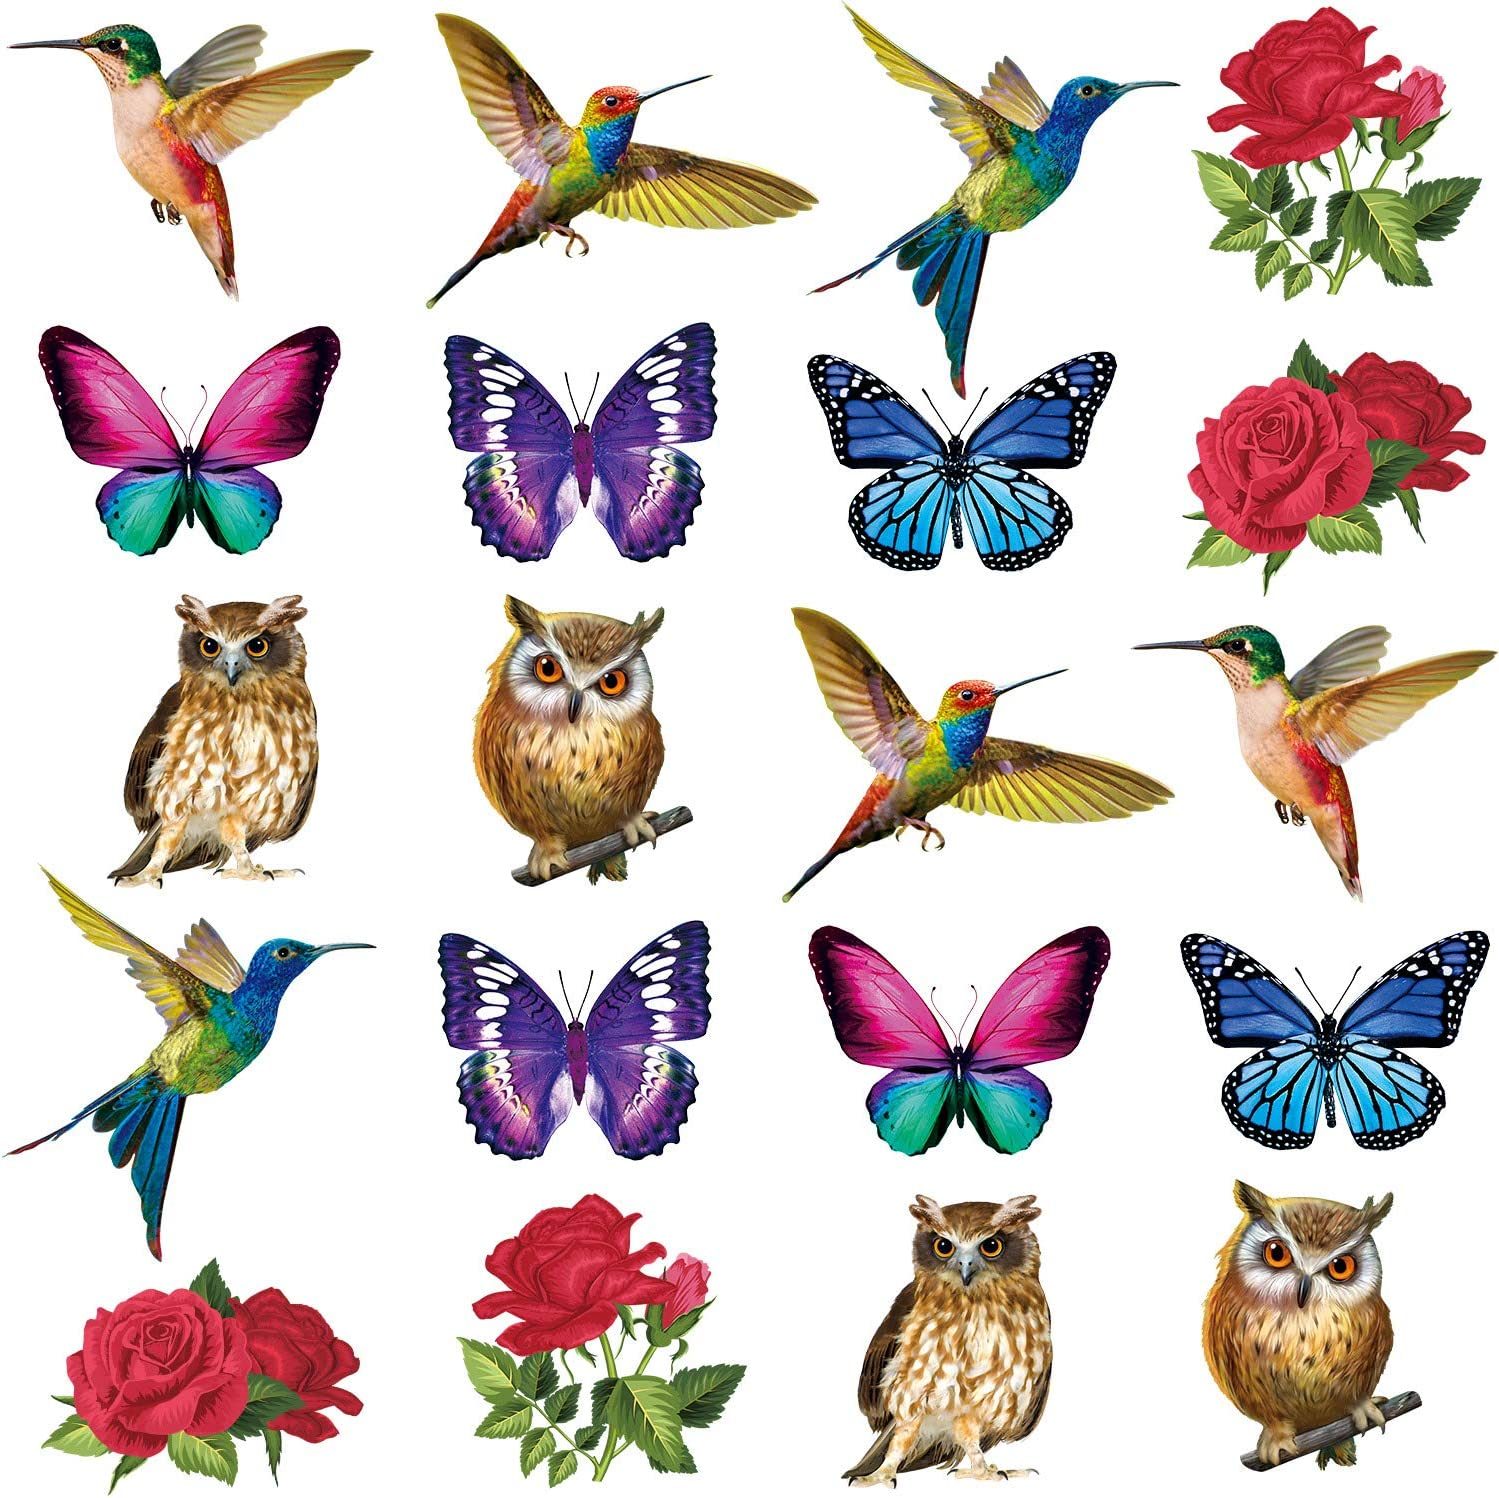 20 Pieces Anti-Collision Window Clings Birds Alert Collision Window Decals Hummingbird Rose Butterfly Owl Cling Decor Static Deterrent Decal Prevent Bird Strikes on Doors Windows Glass